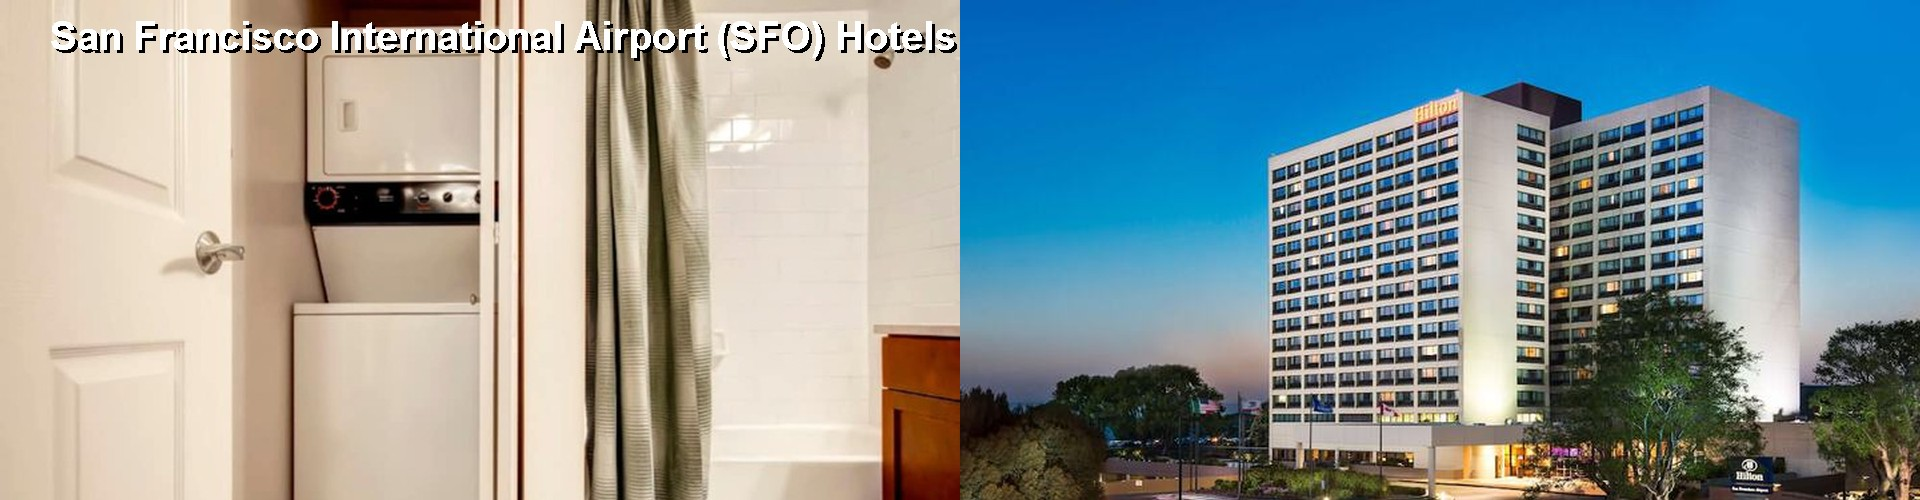 5 Best Hotels near San Francisco International Airport (SFO)